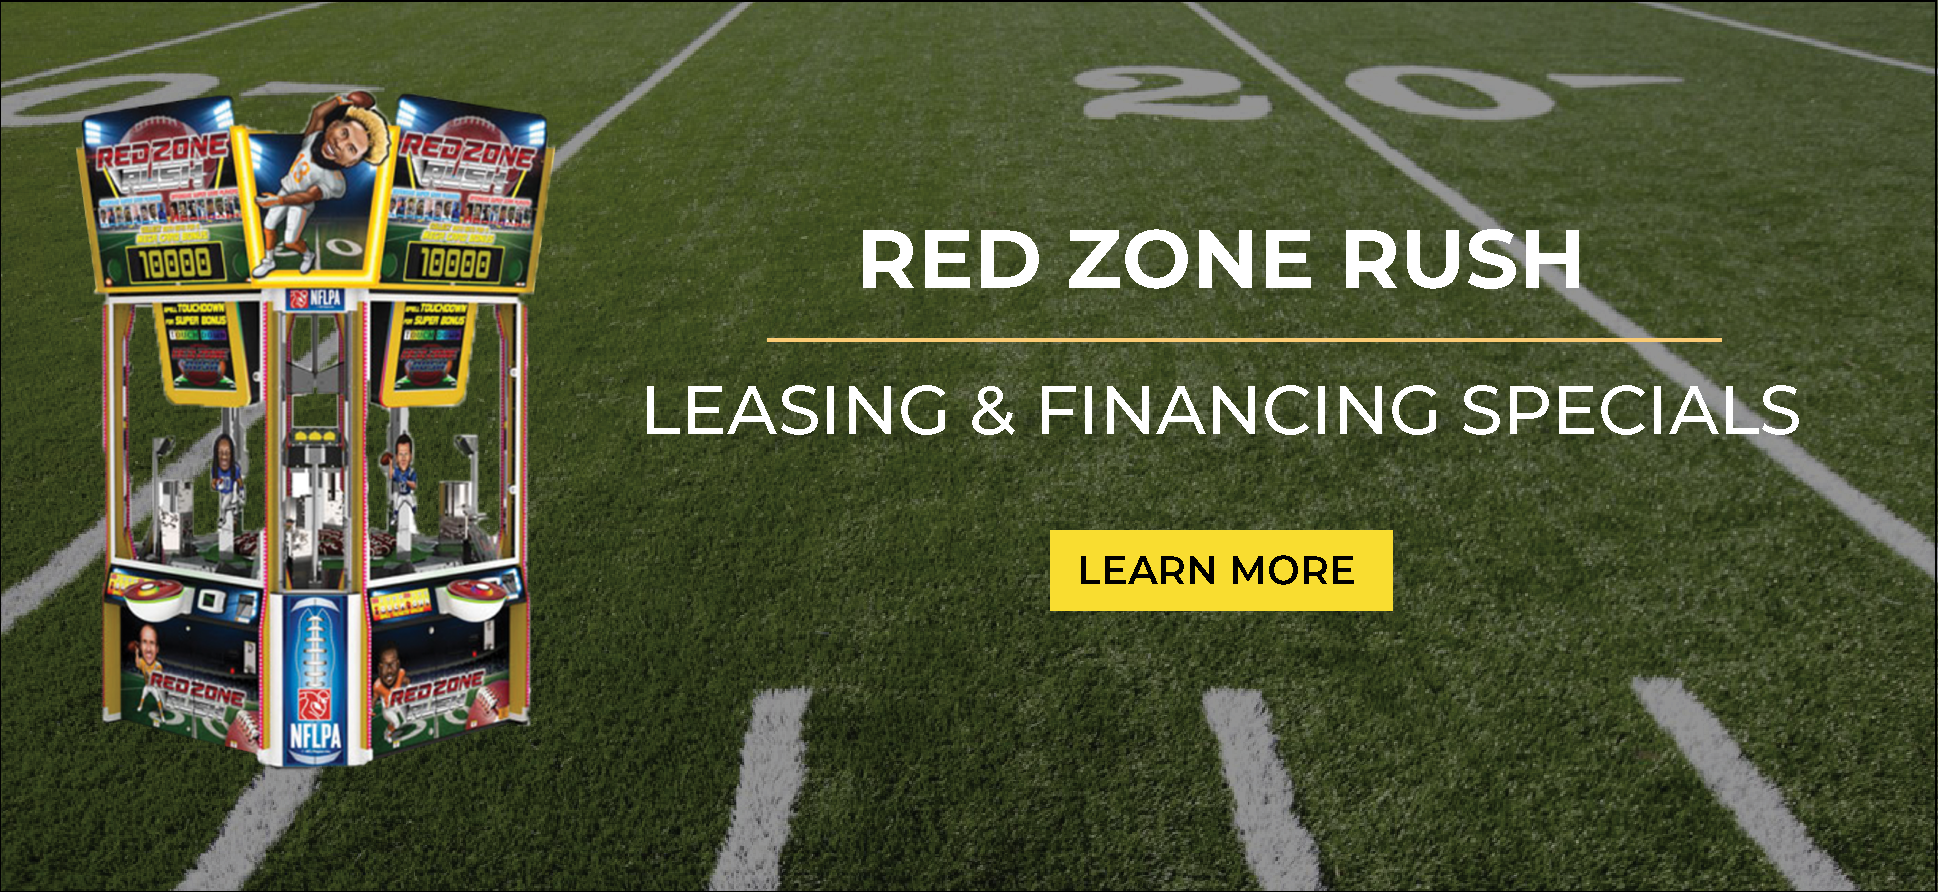 Red Zone Rush Specials